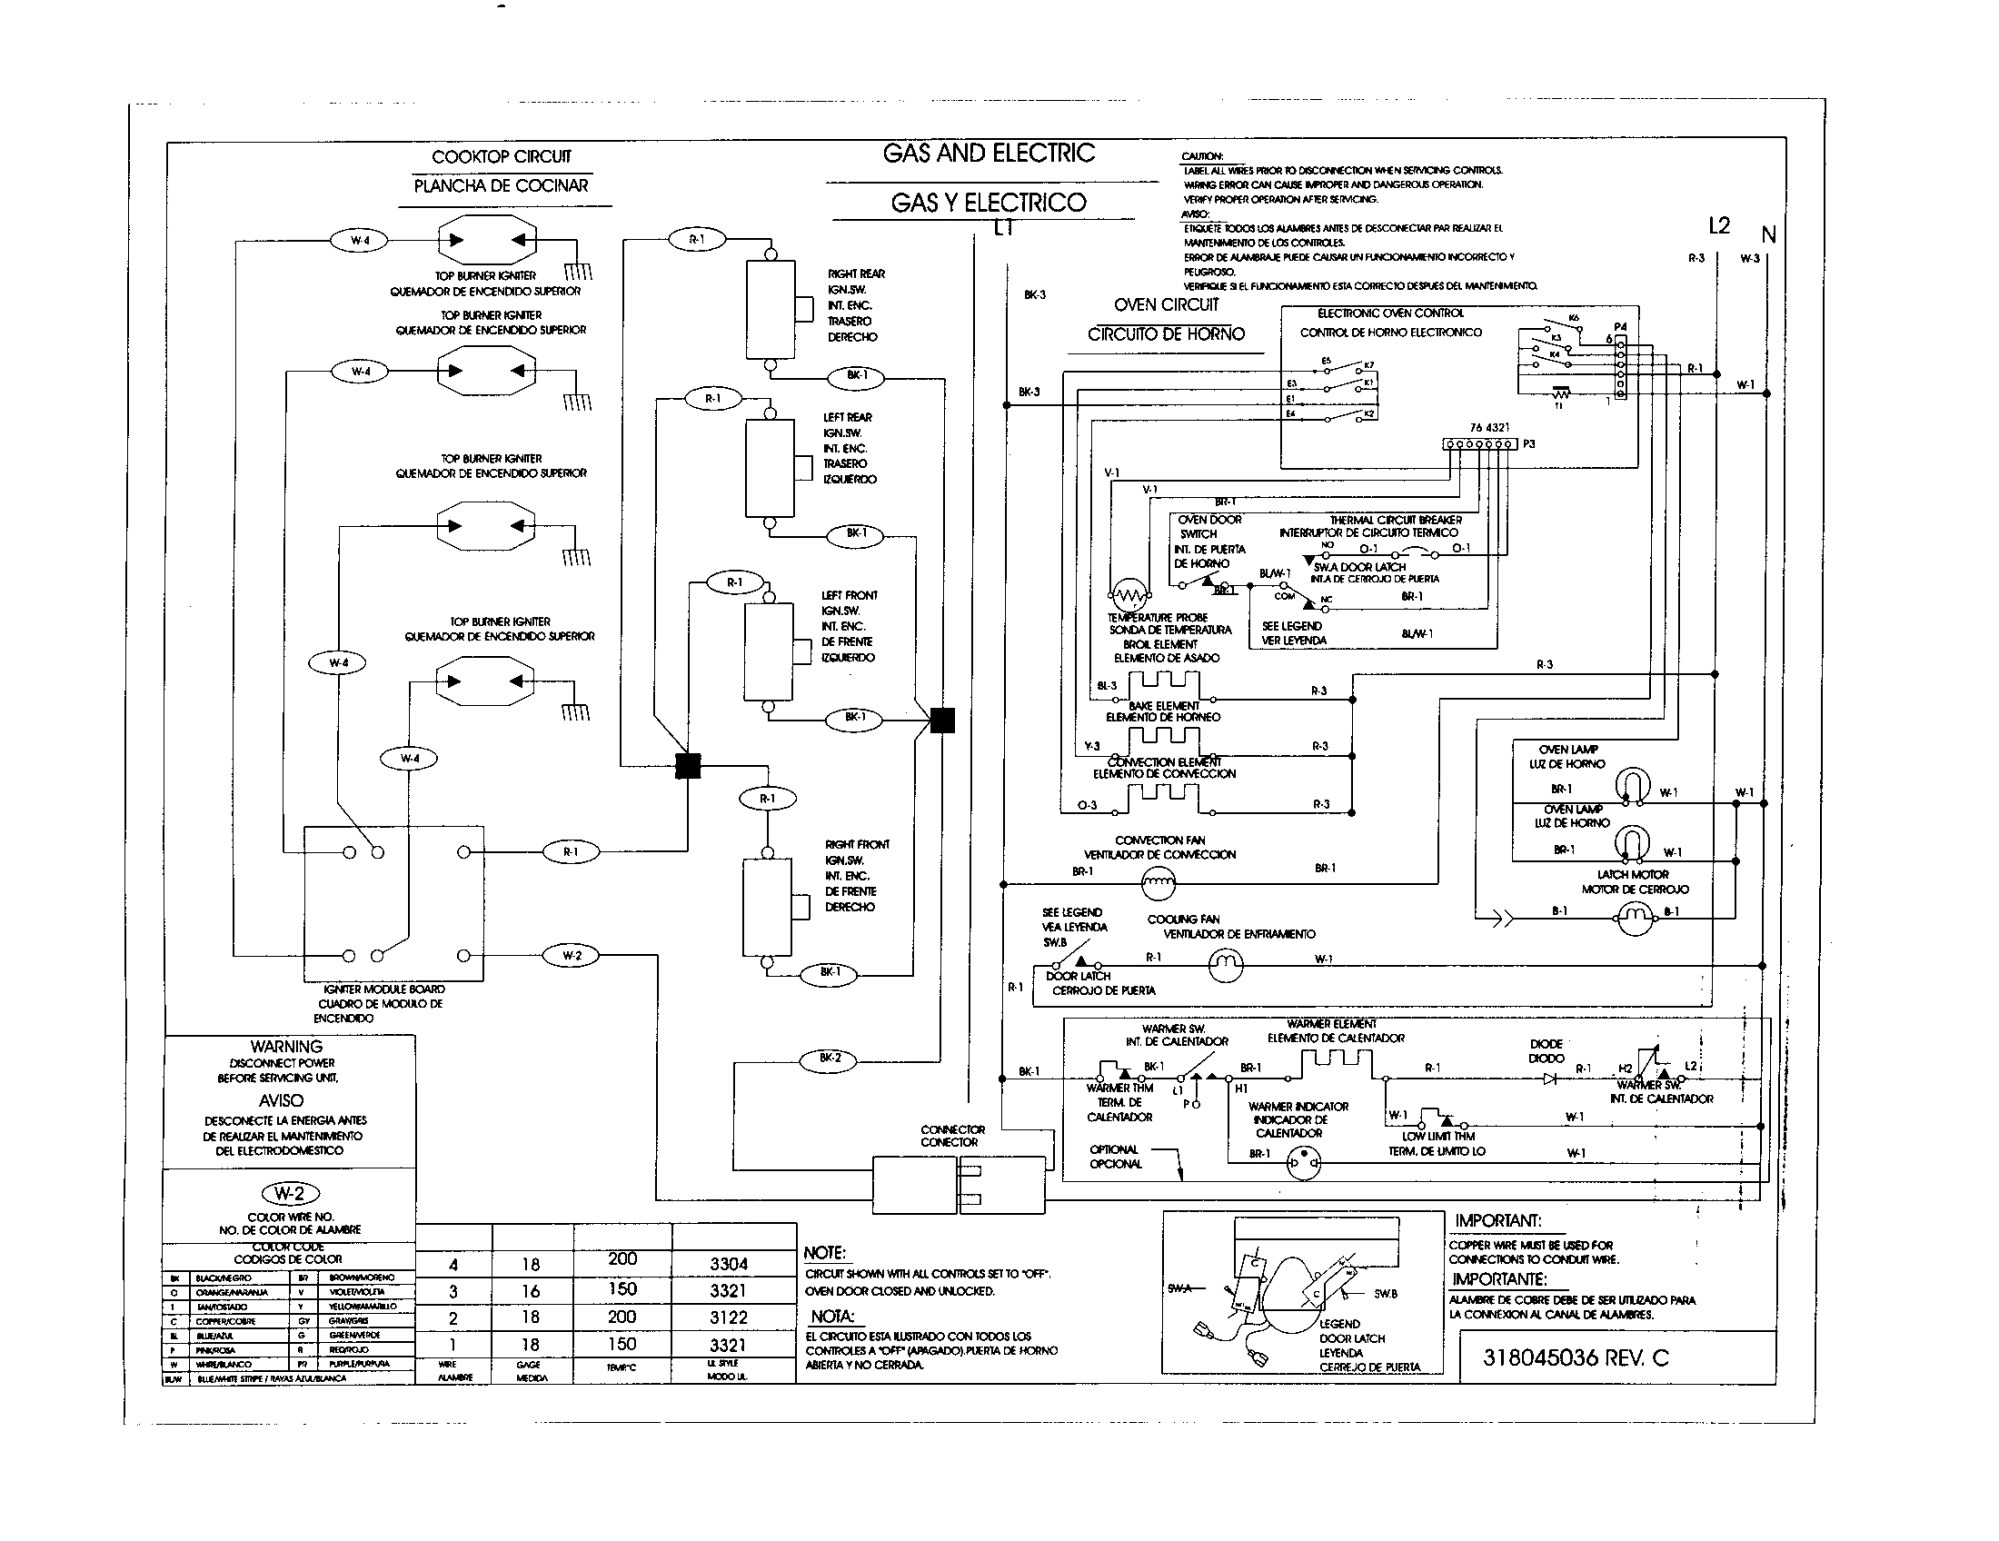 hight resolution of a wiring diagram for whirlpool range gjd3044rb02 wiring diagrams for diagram range wiring whirlpool gs445lems4